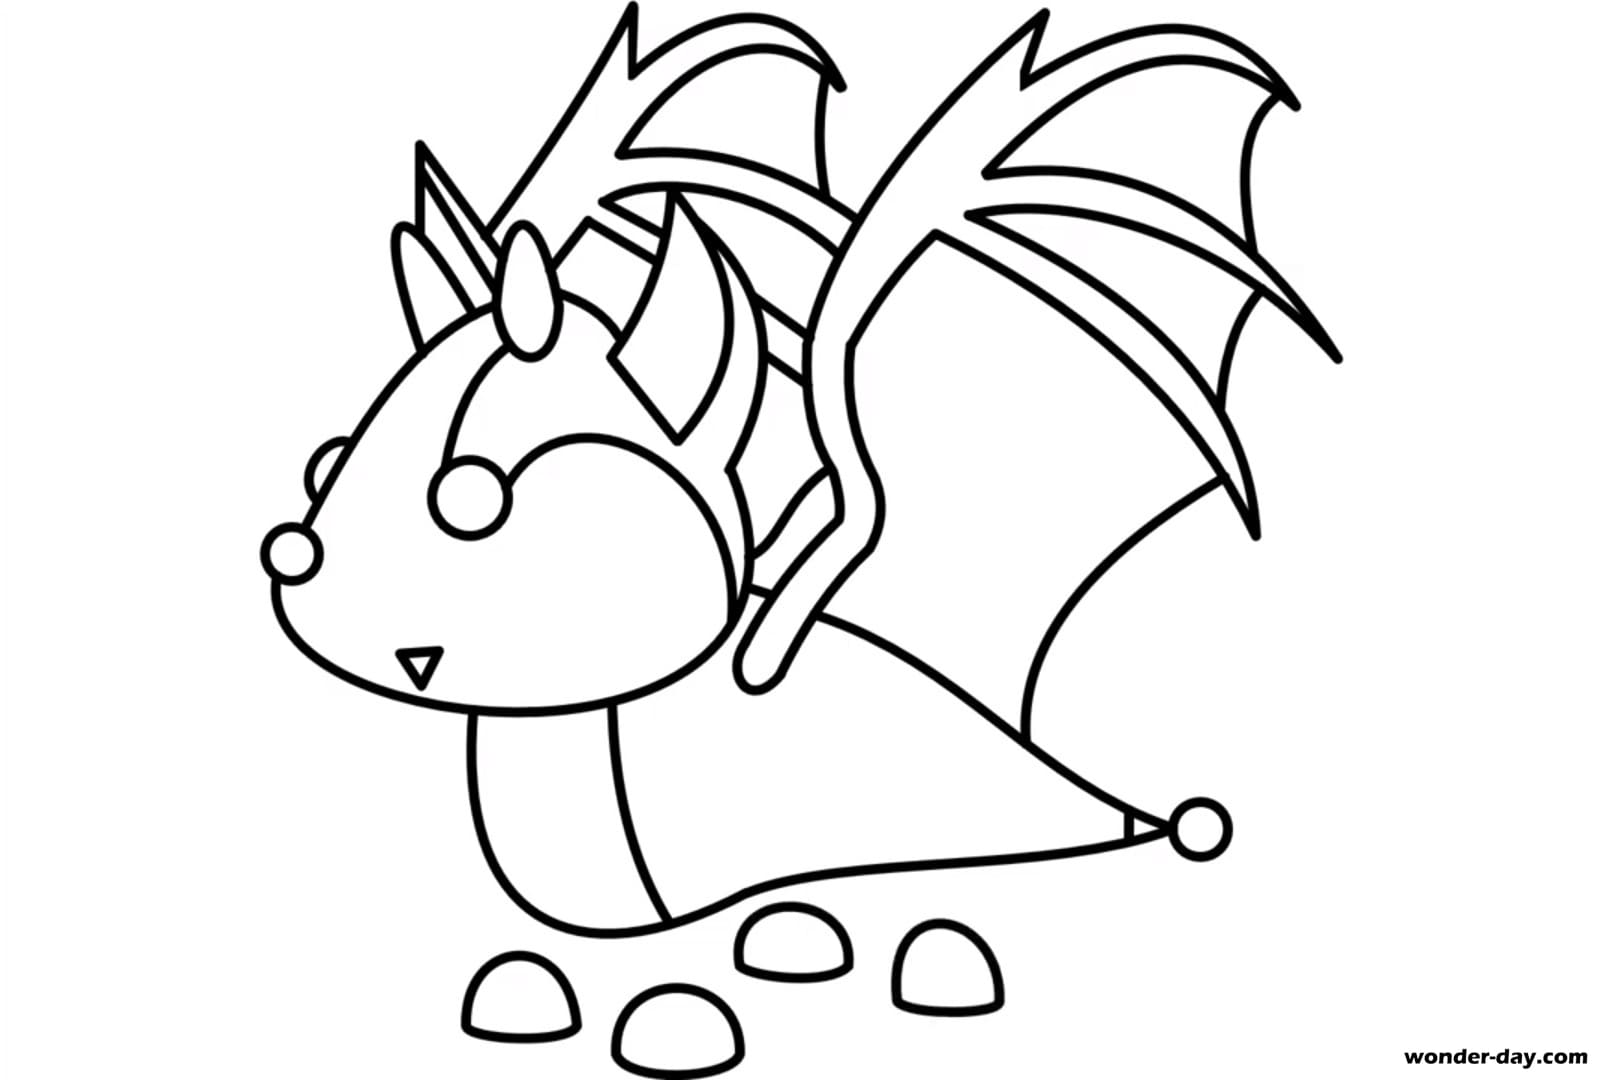 Adopt Me Coloring Pages Coloring Home